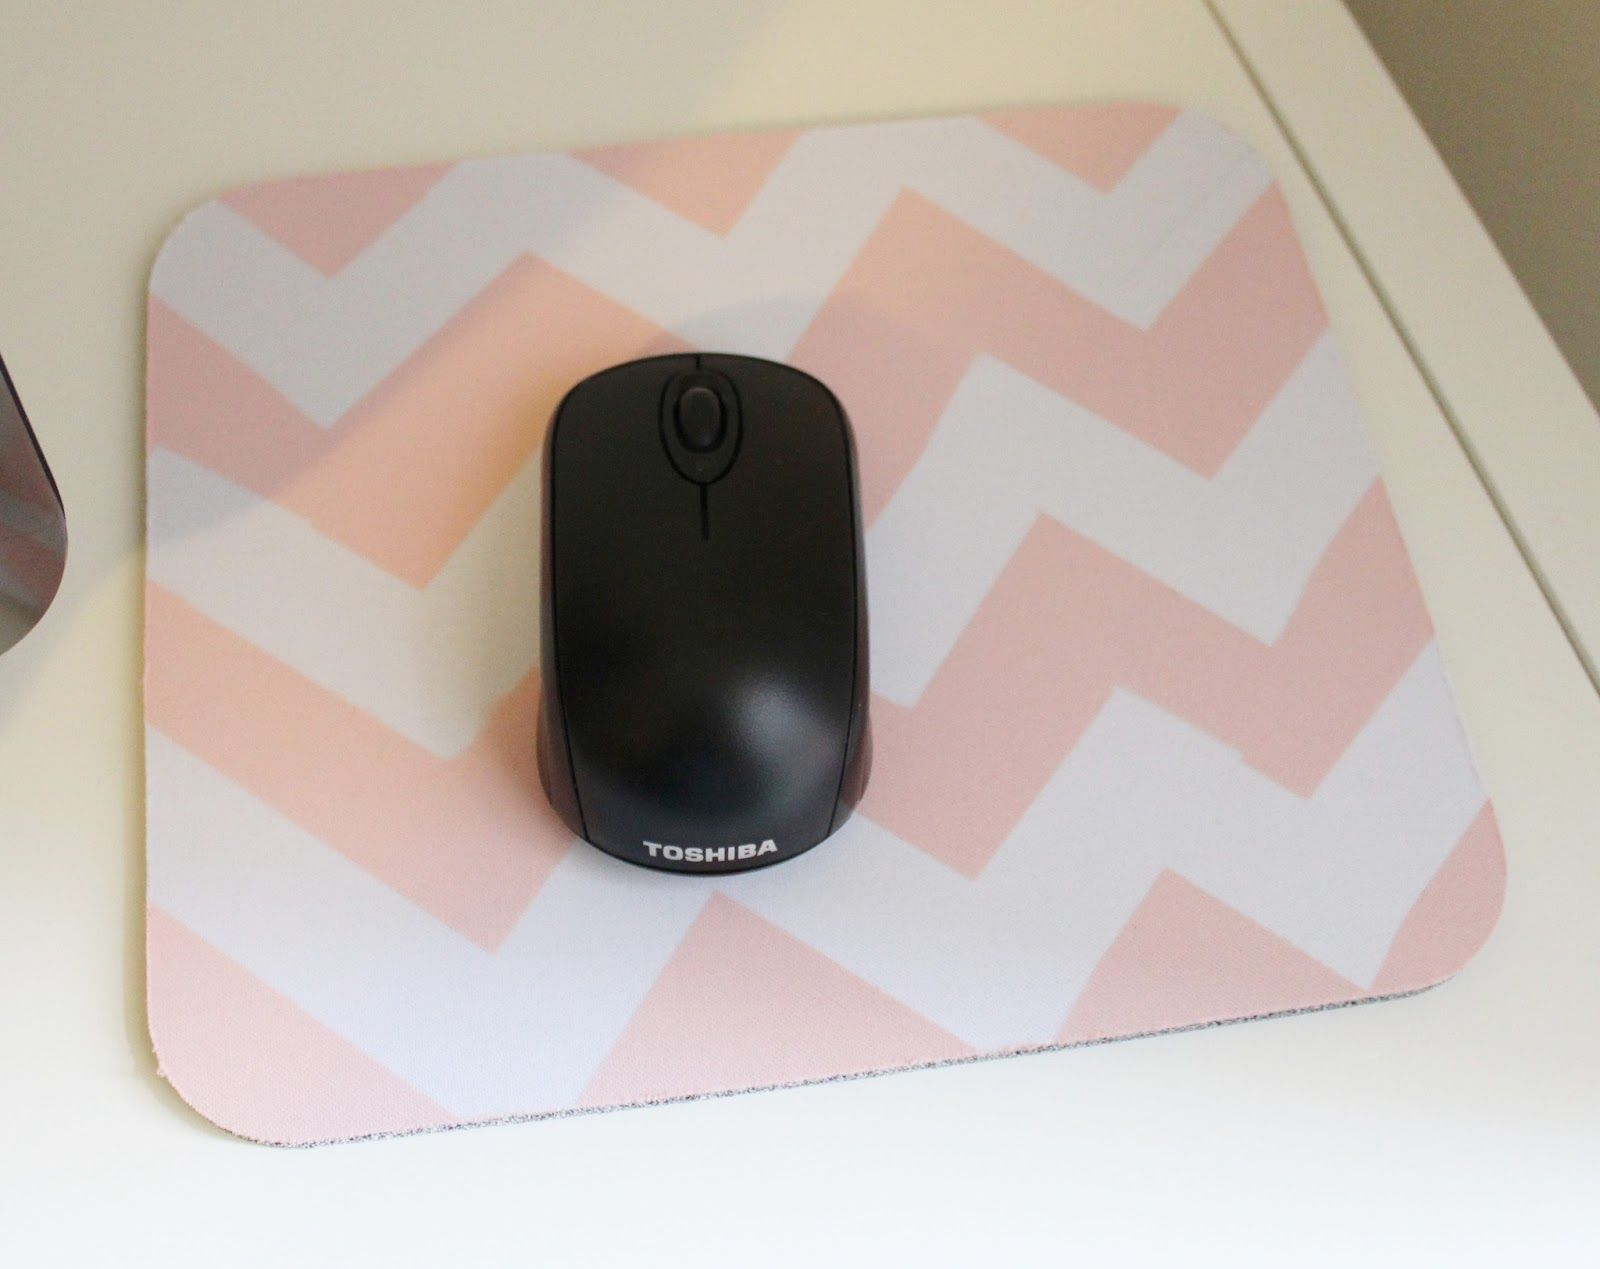 21 Diy Mouse Pad Ideas That You Can Make Easily With Images